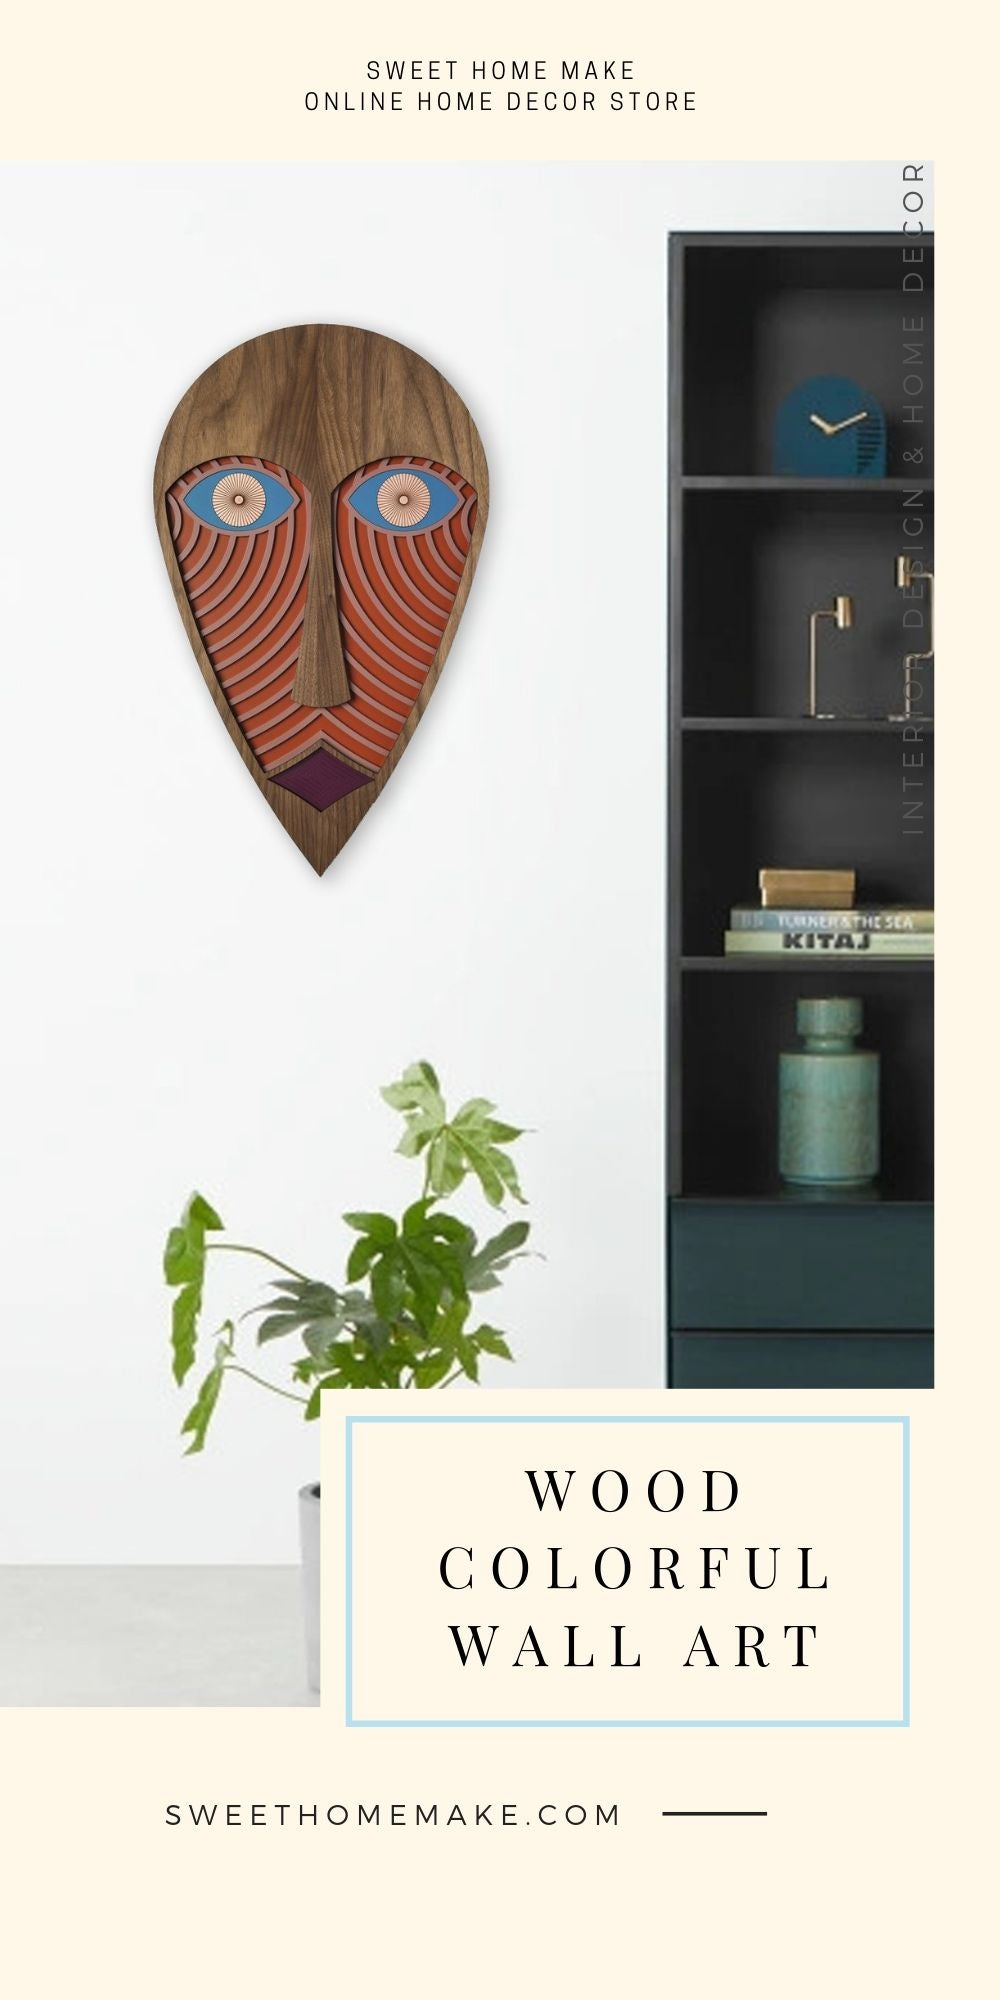 African Wall Mask with Wood Figurative Face Modern Wall Art